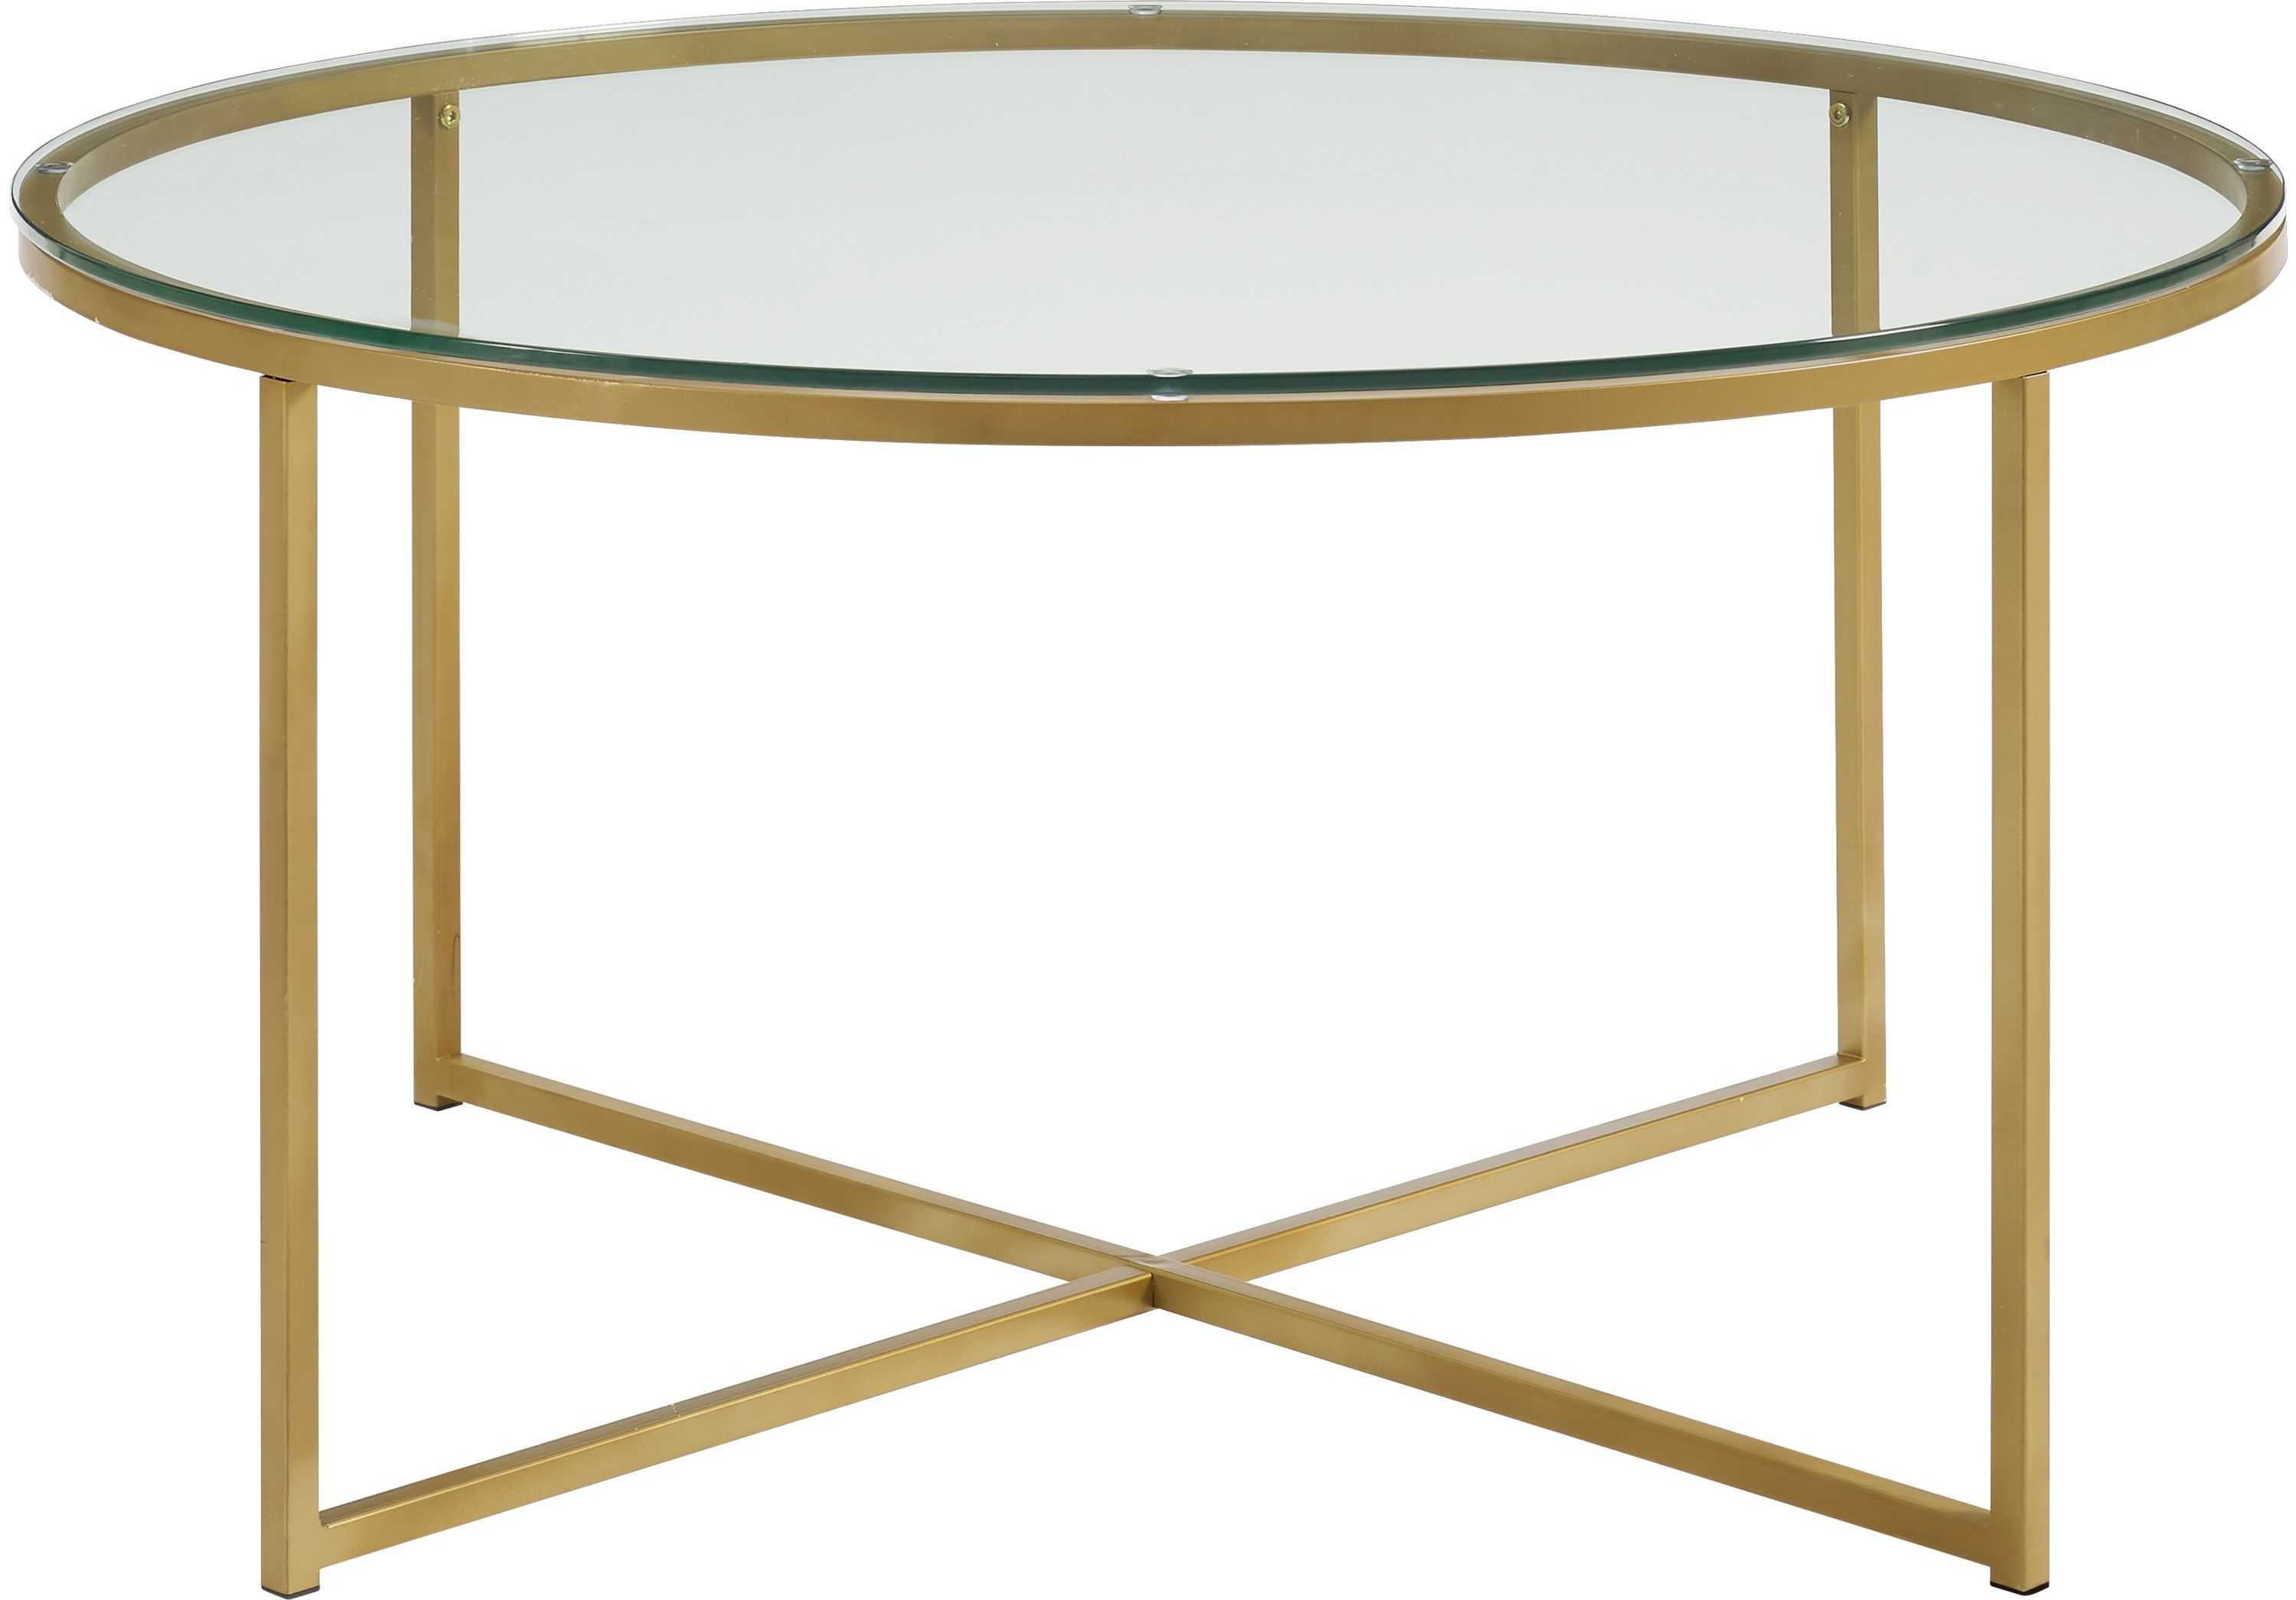 Bryon Alley Gold Cocktail Table Cocktail Tables Colors Coffee Table Glass Top Coffee Table Gold Cocktail Table